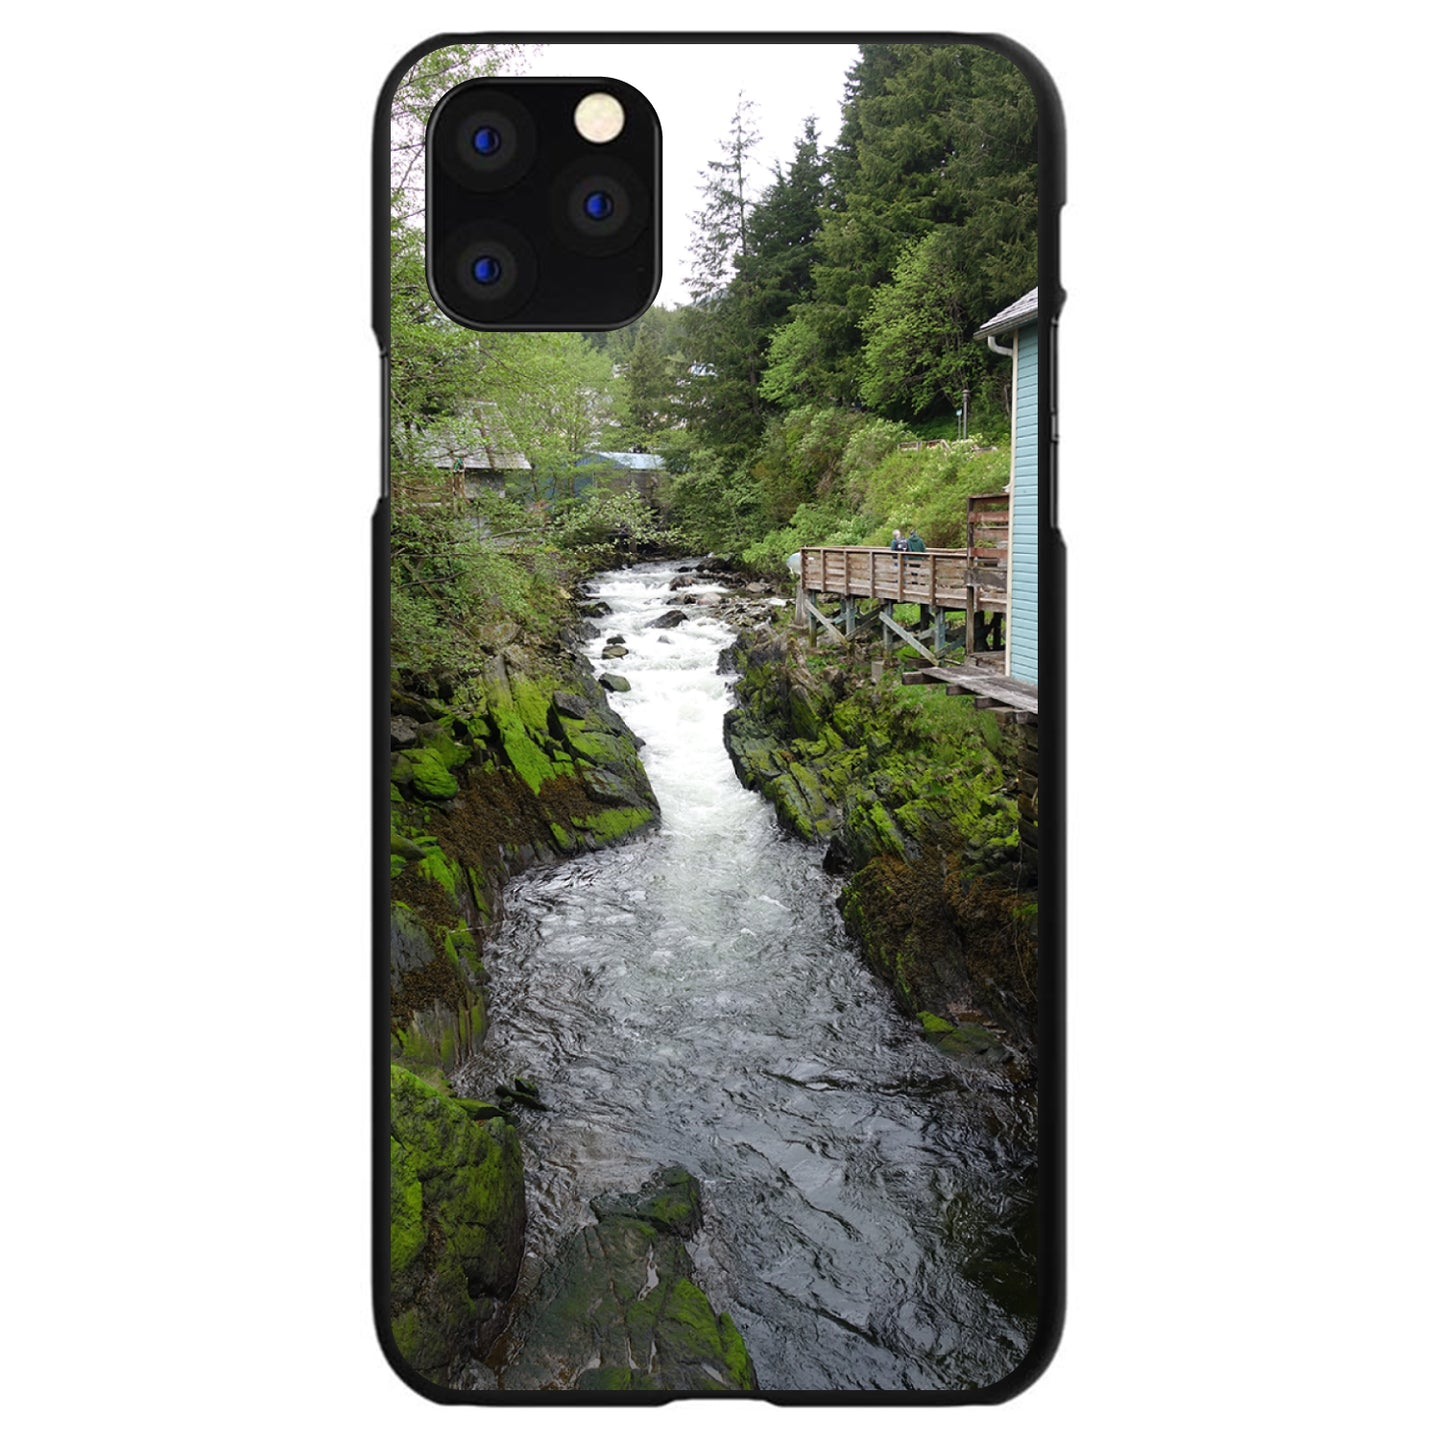 DistinctInk® Hard Plastic Snap-On Case for Apple iPhone - Ketchikan Alaska Stream